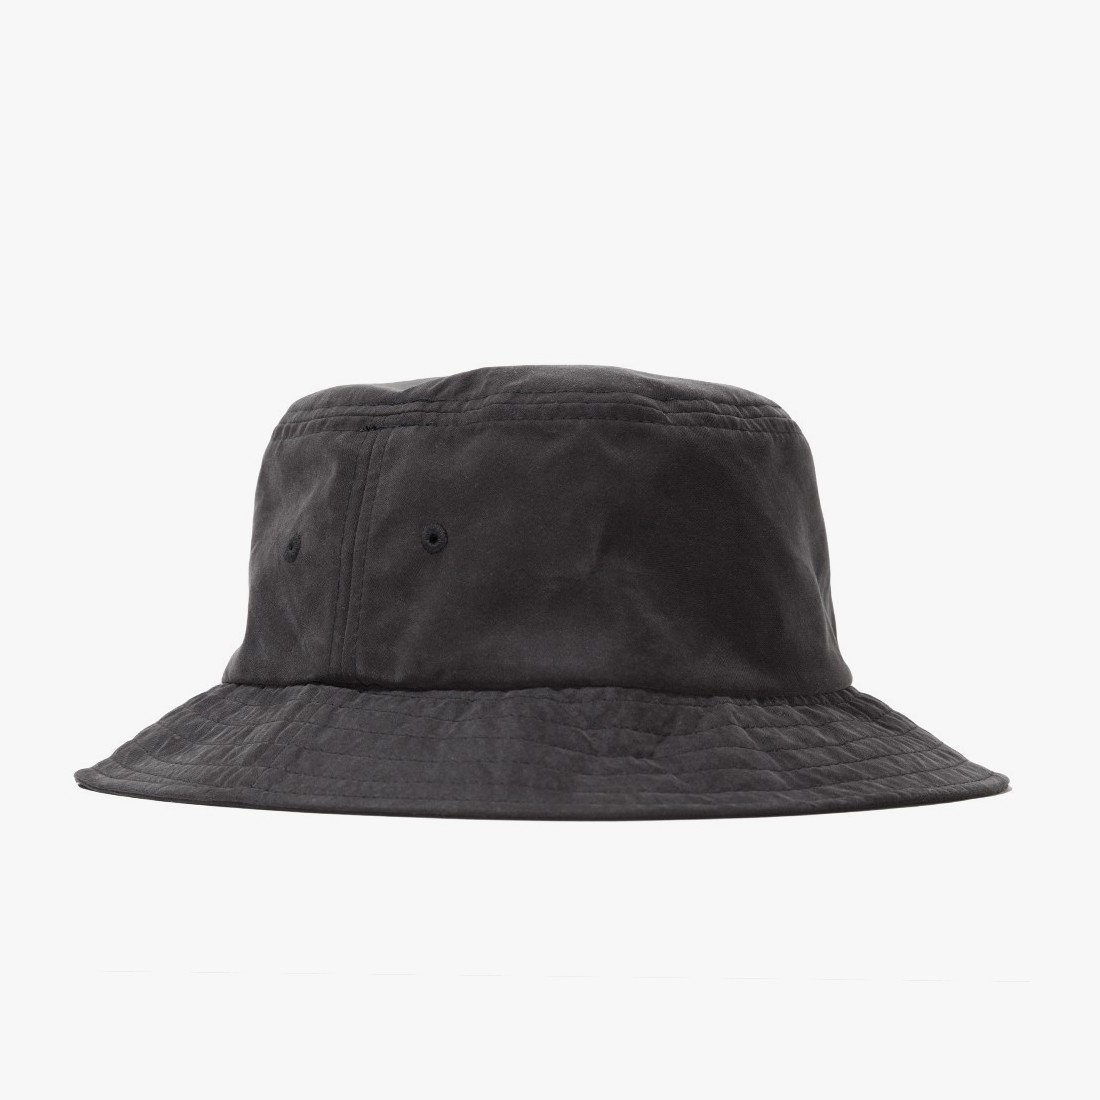 ecb41cab879 Stock Bucket Hat Stock Bucket Hat. «